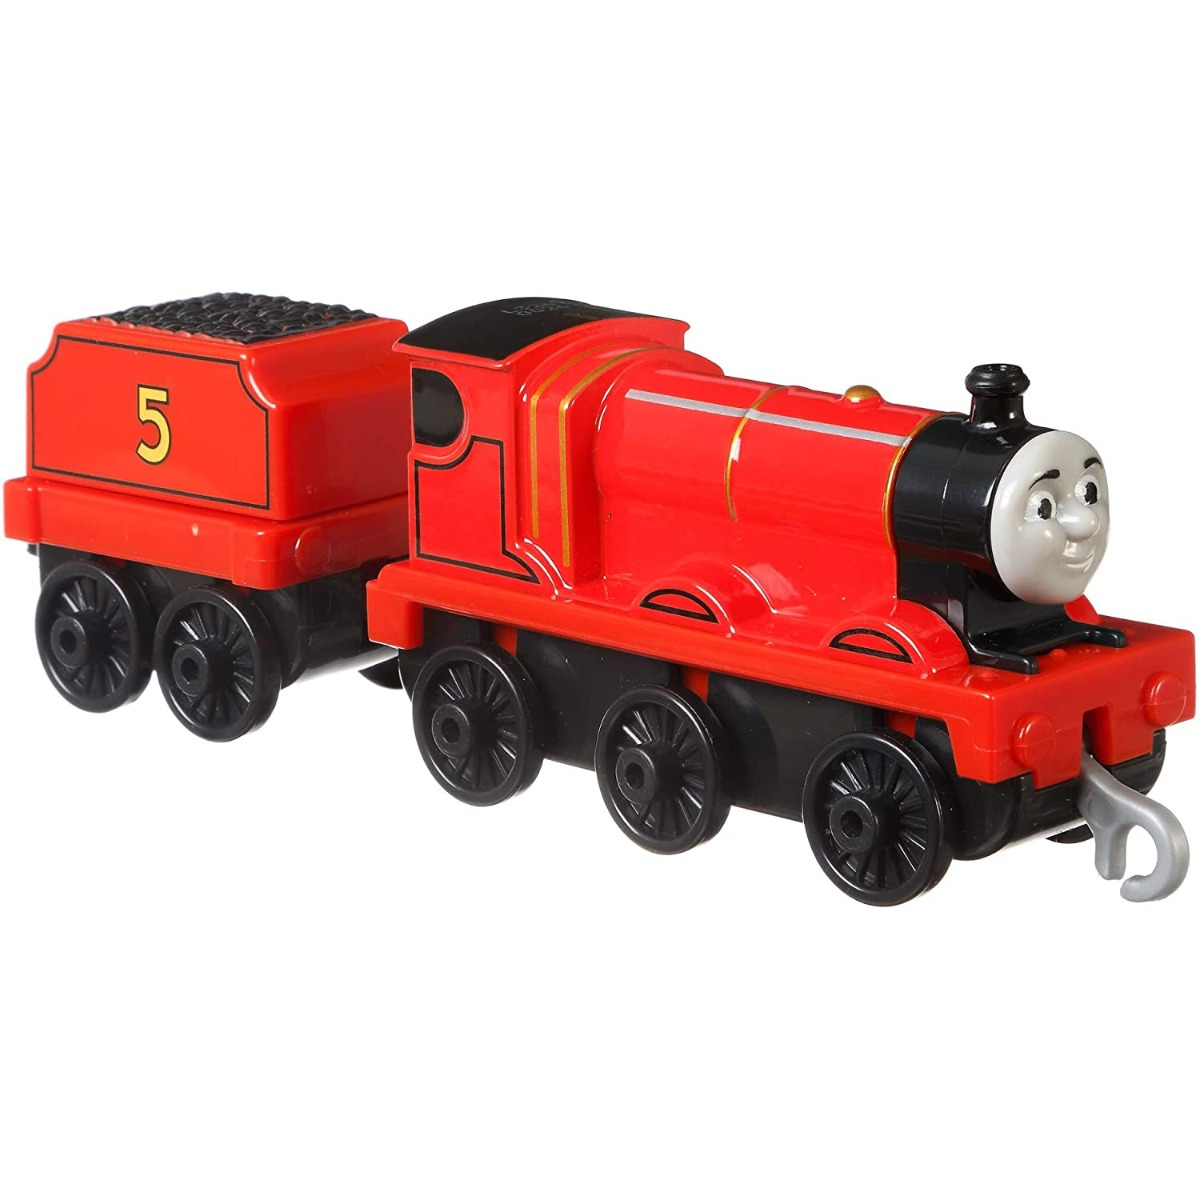 Locomotiva cu vagon Thomas and Friends, James FXX21